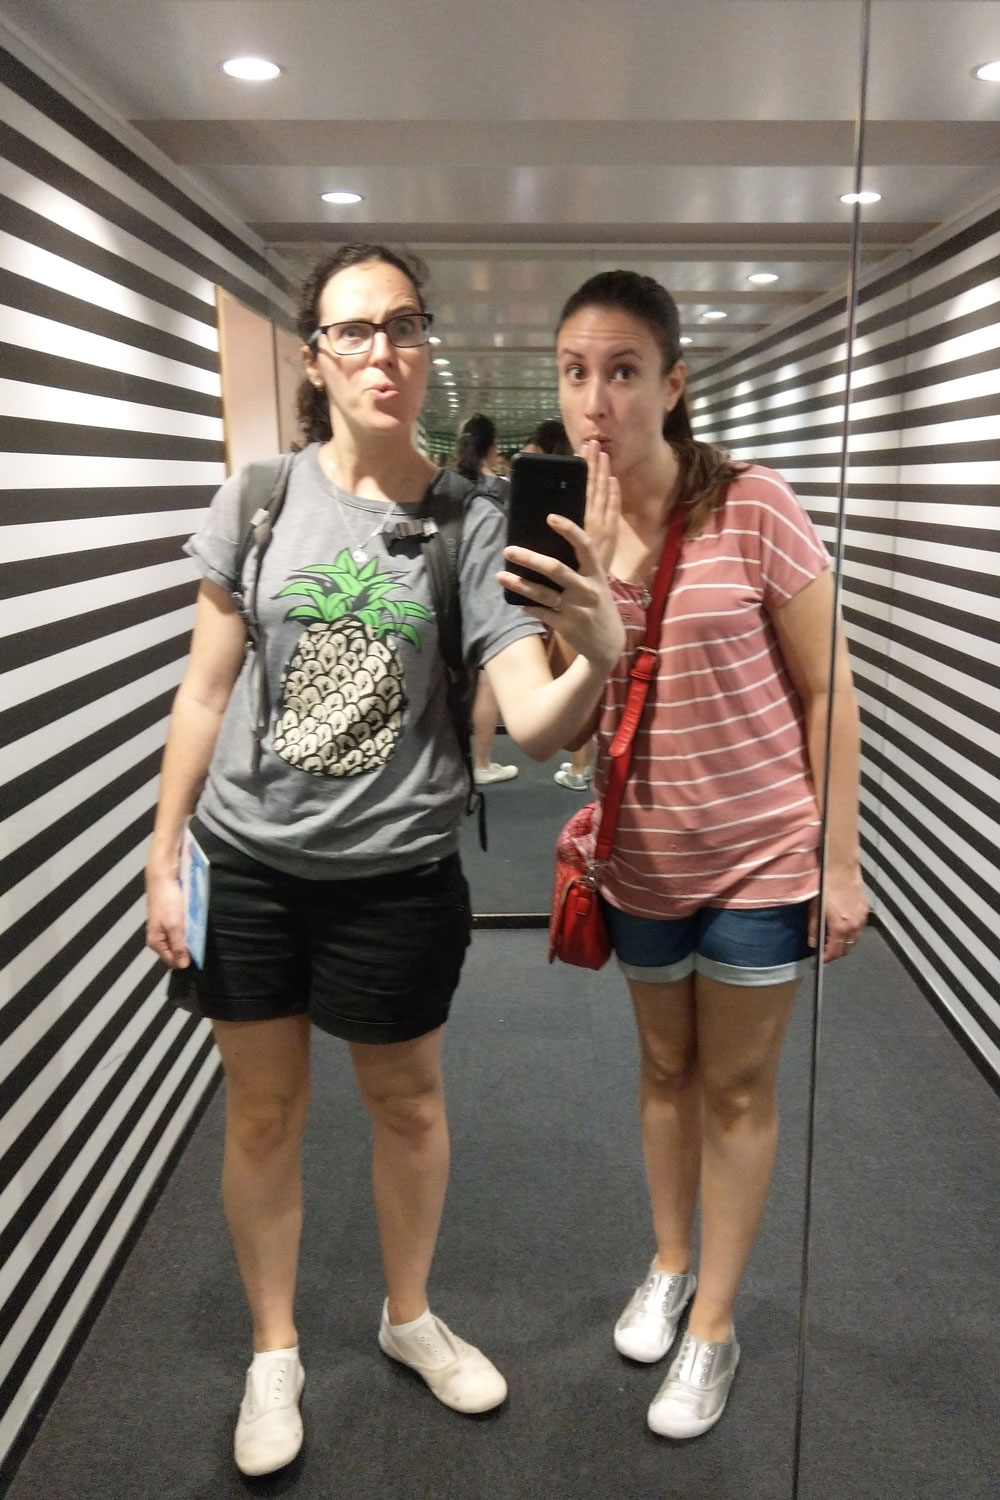 Two people standing in front of mirror.